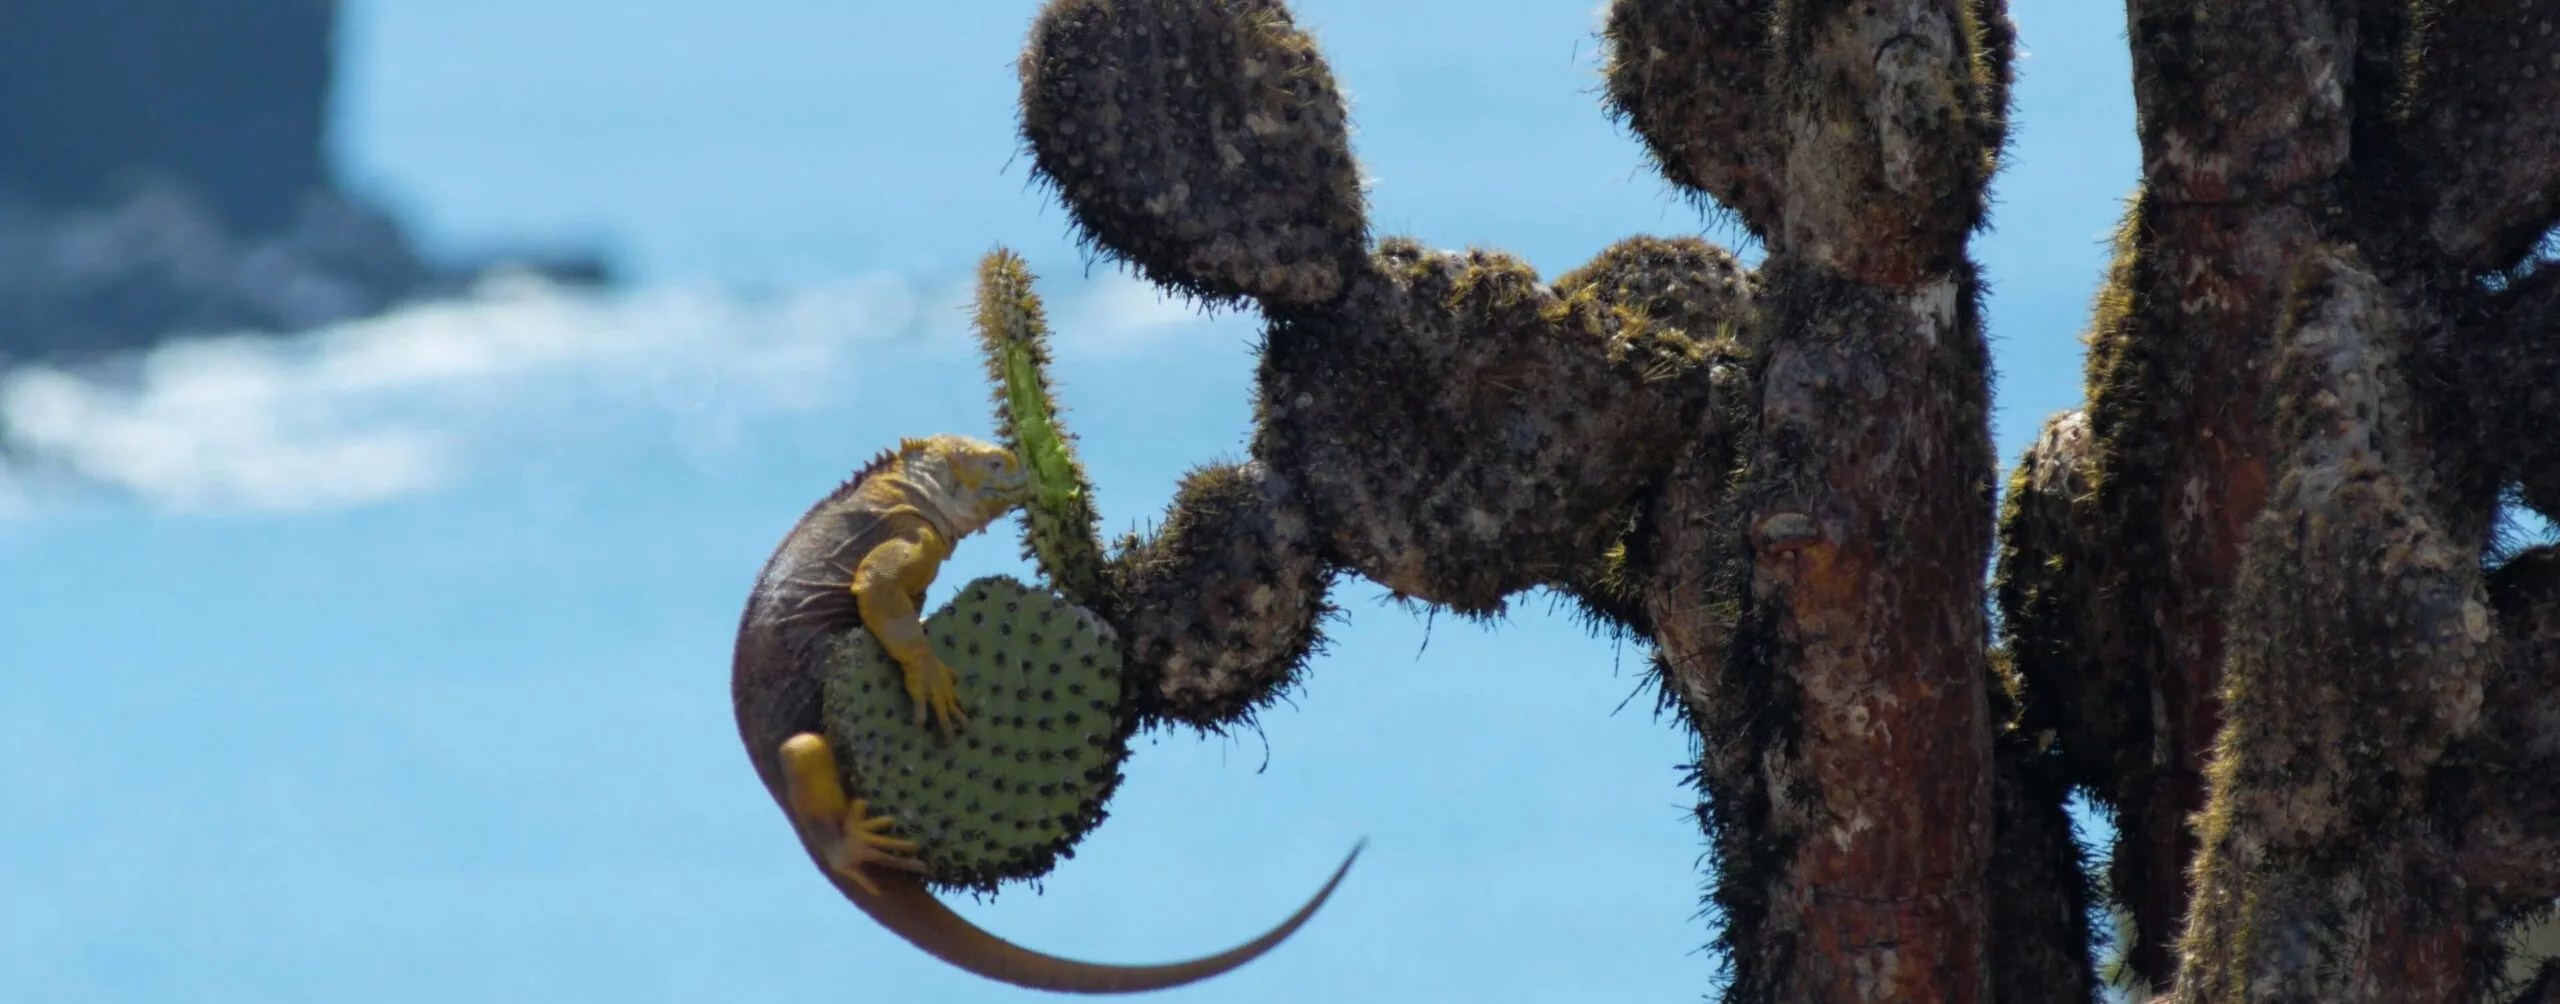 frame grab of iguana on a cactus from a documentary film